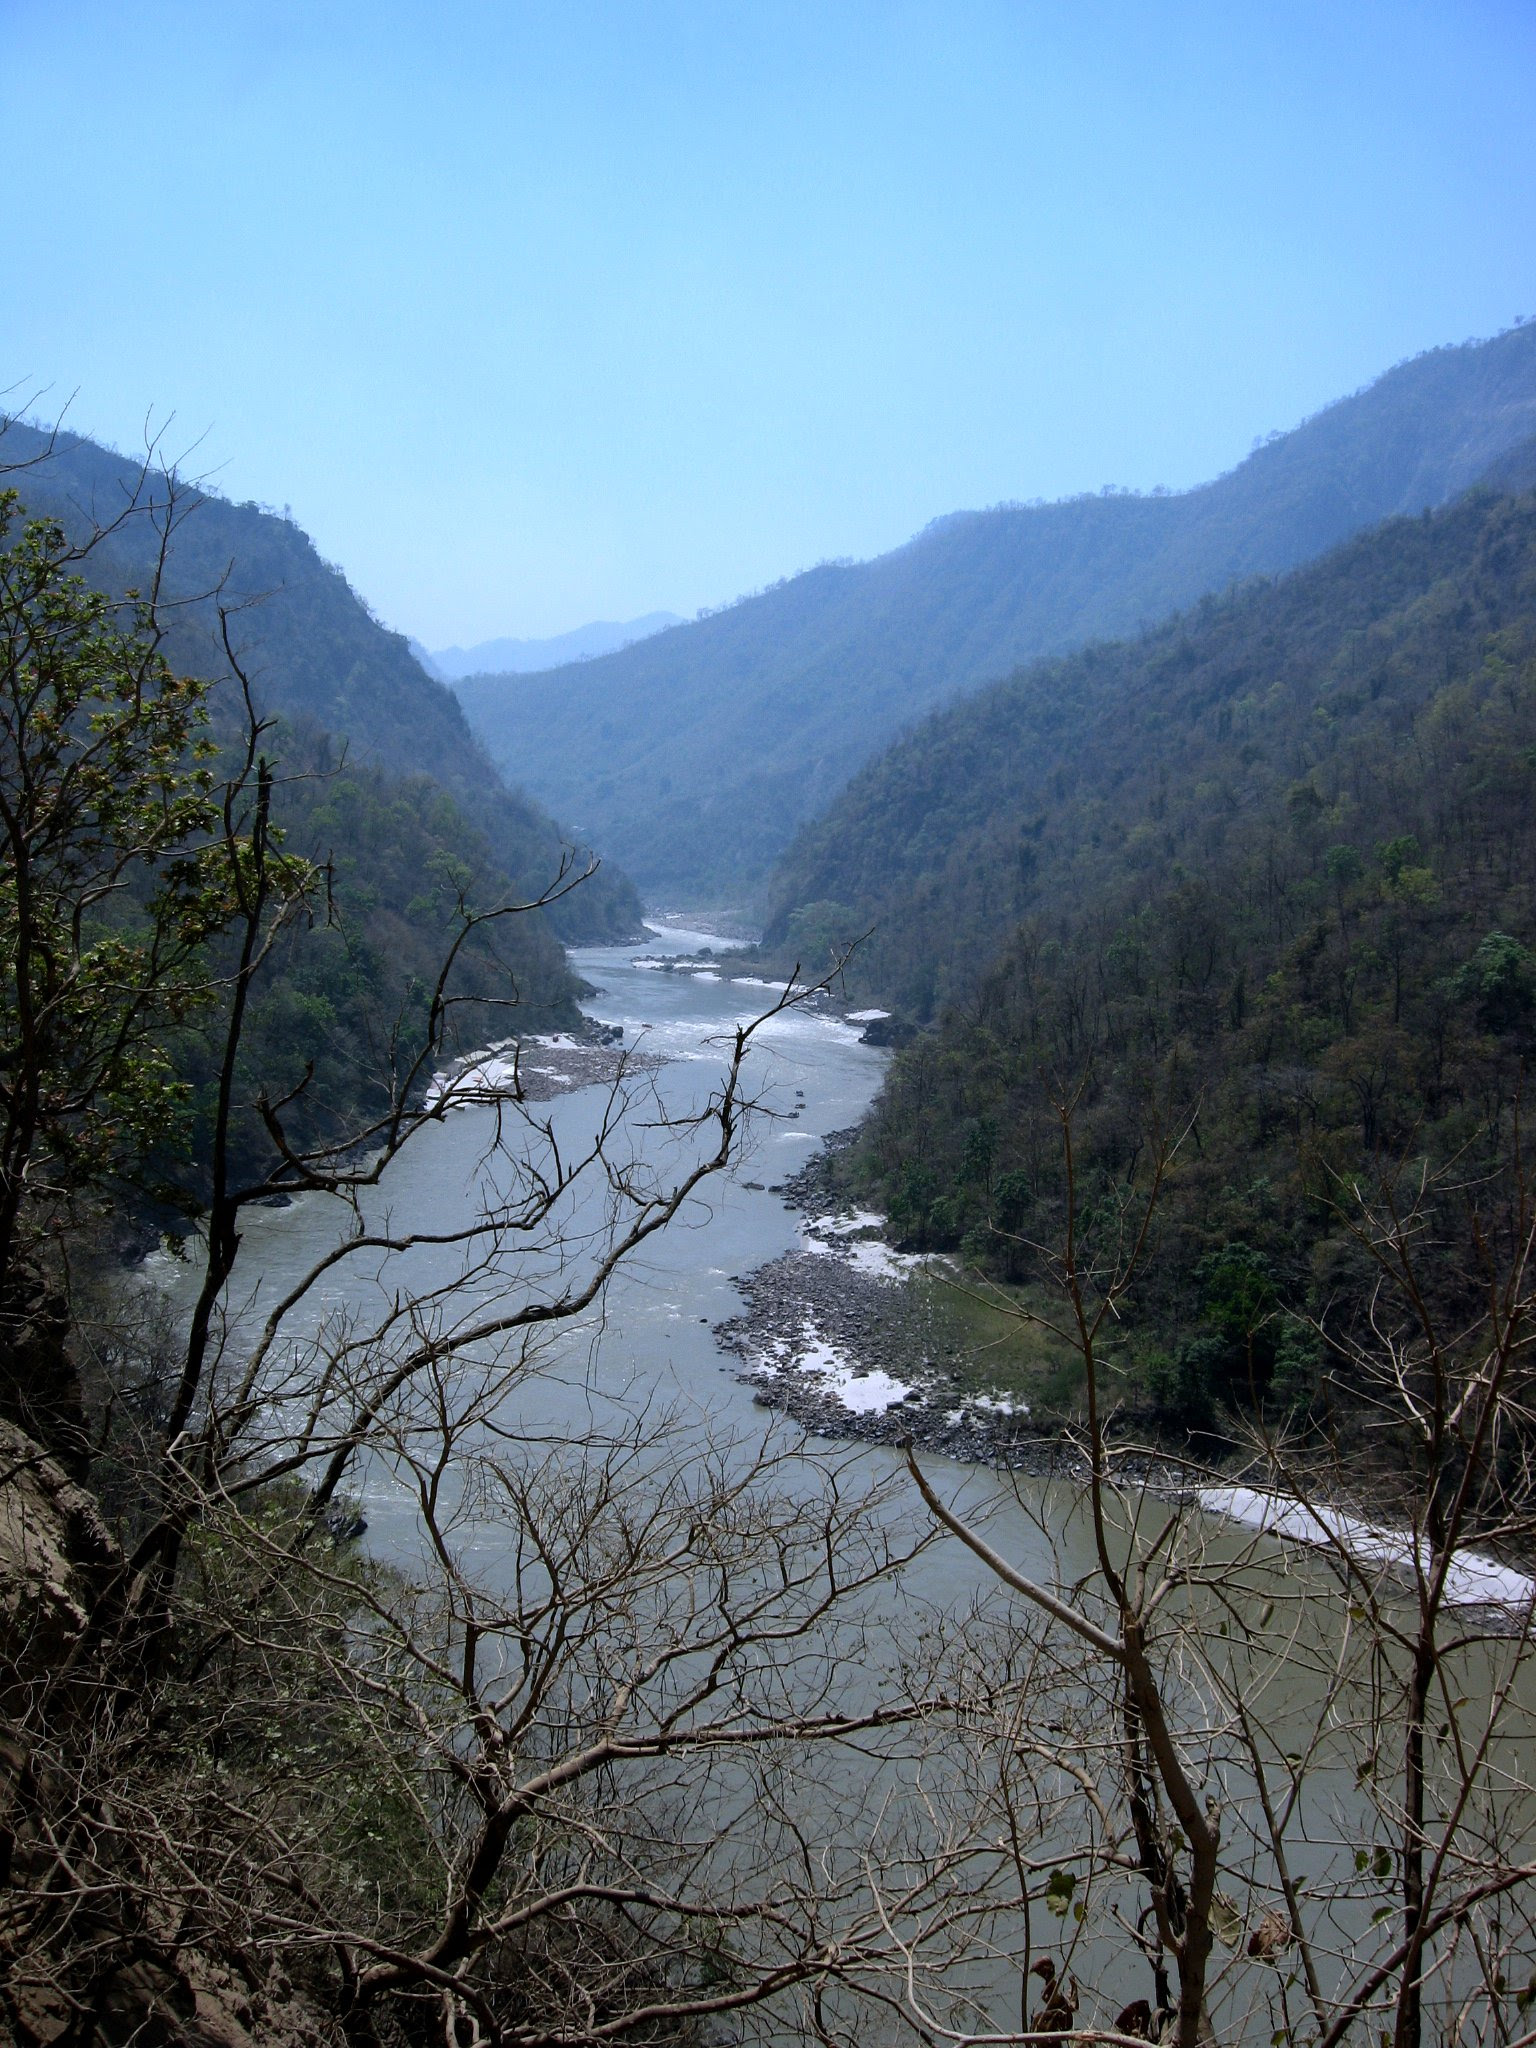 File:River Ganga meandering through the Shivalik ranges, Rishikesh.jpg